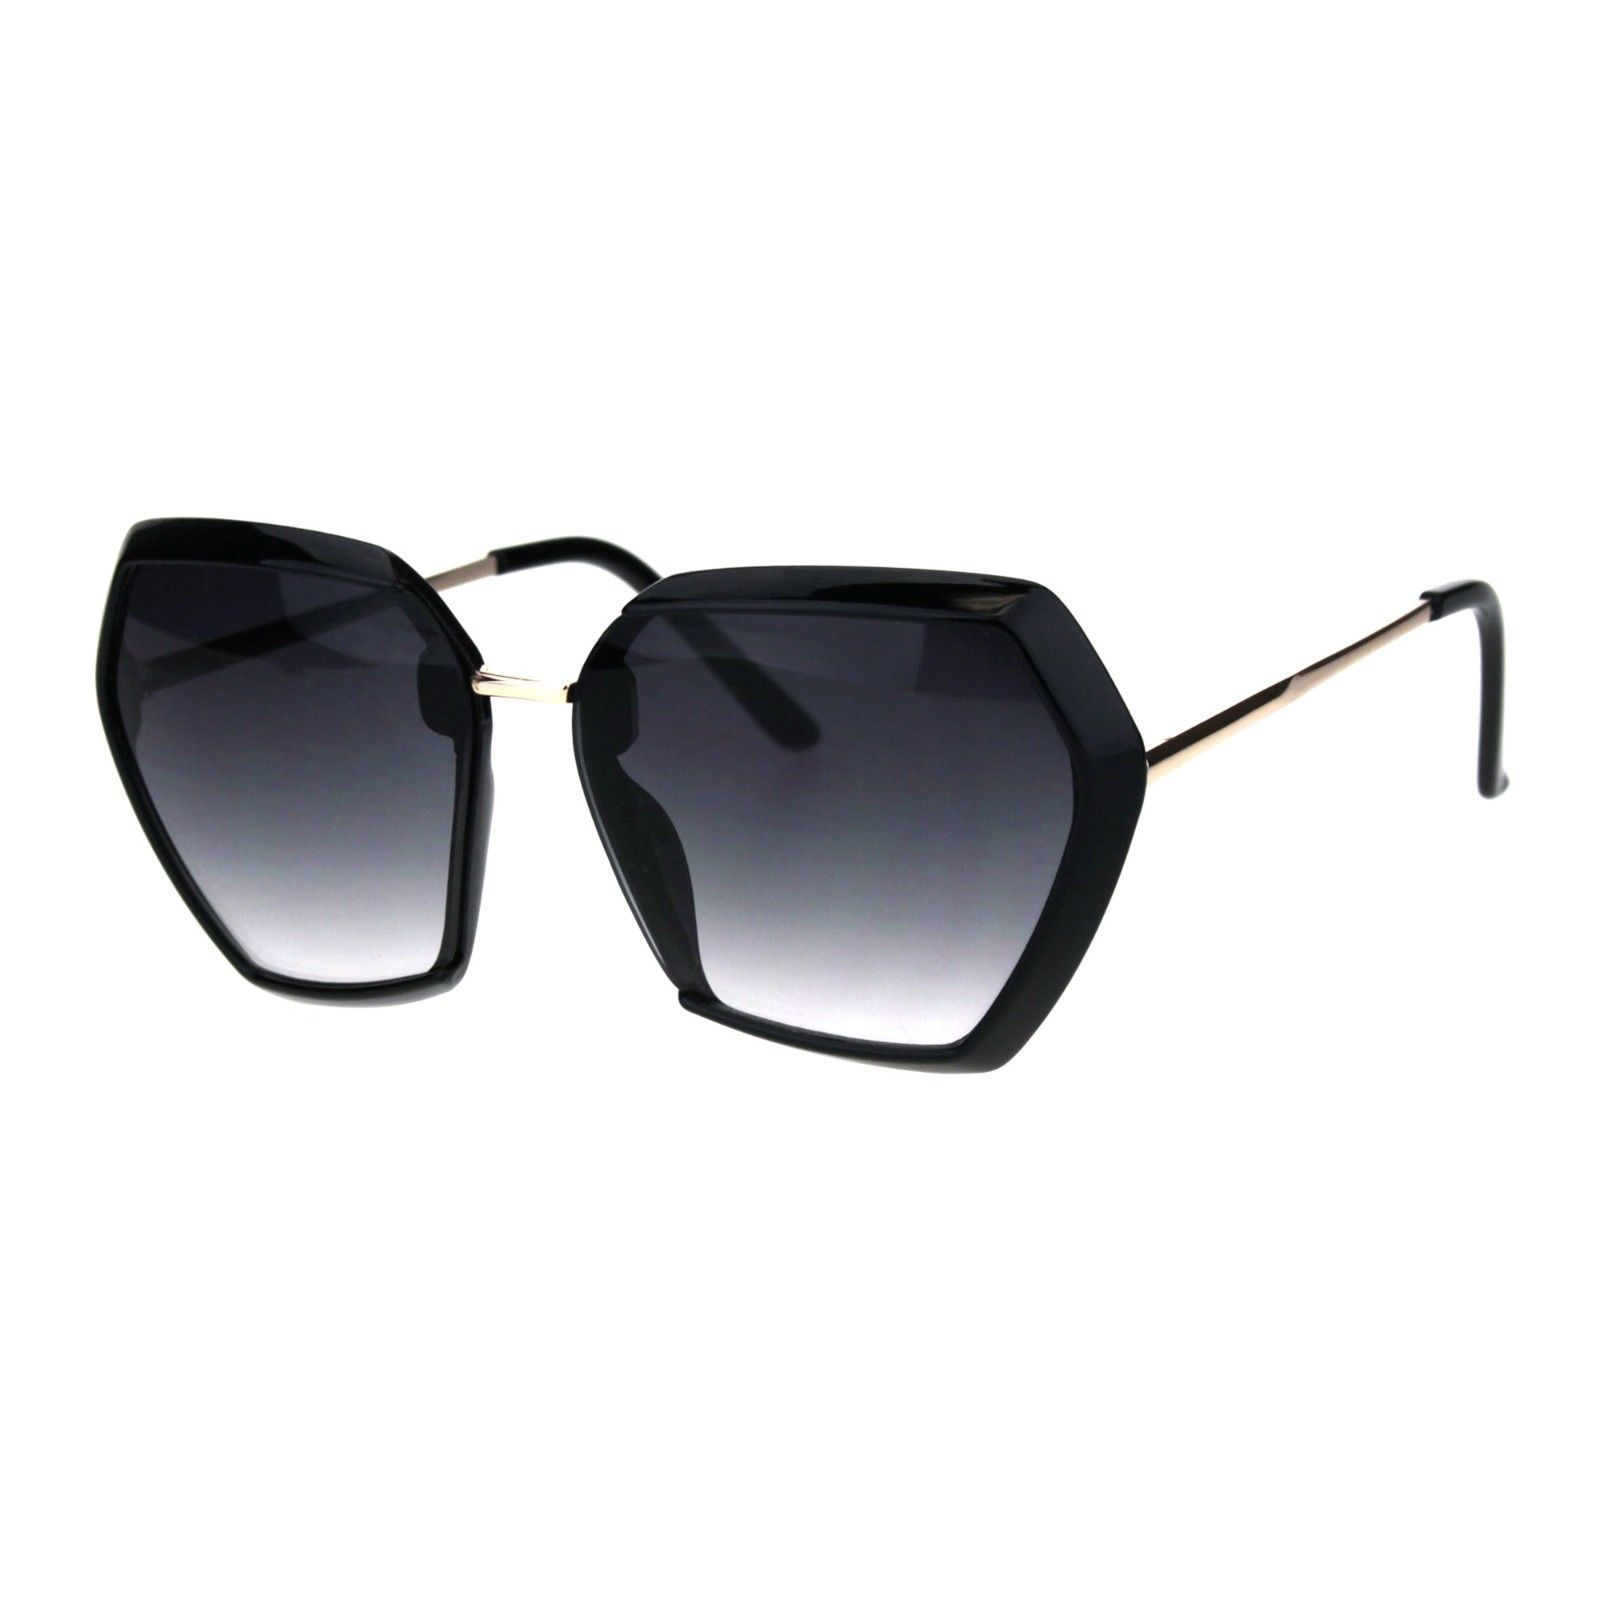 Womens Chic Fashion Sunglasses Unique Square Trapezoid Frame UV 400